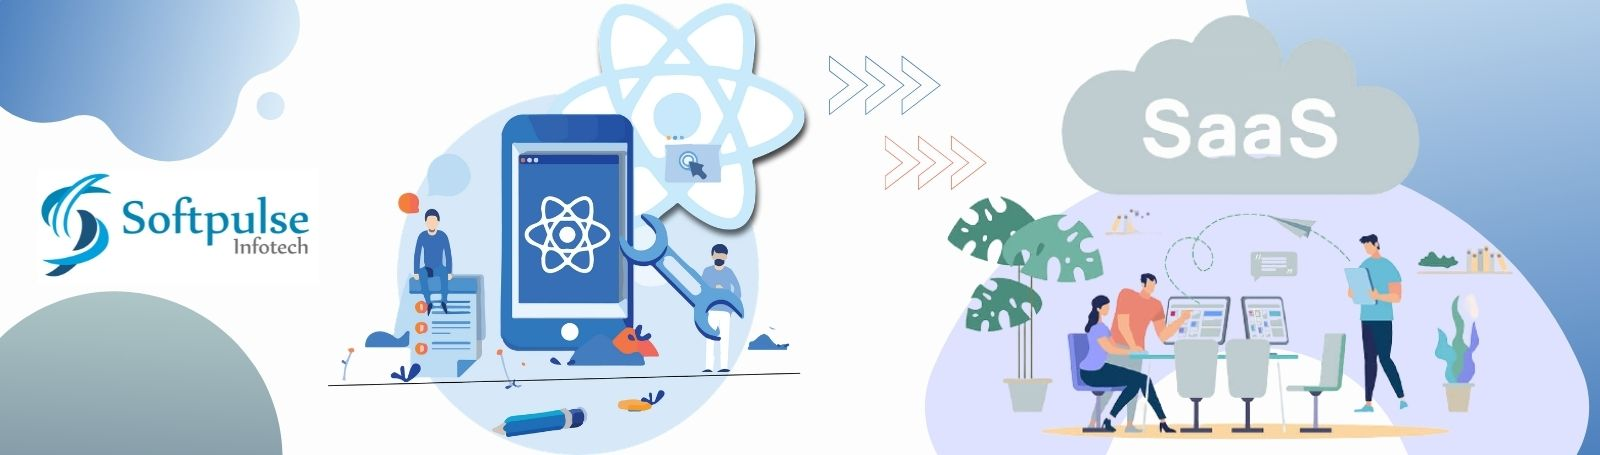 Why Is Reactjs An Excellent Choice For Saas Product Development?